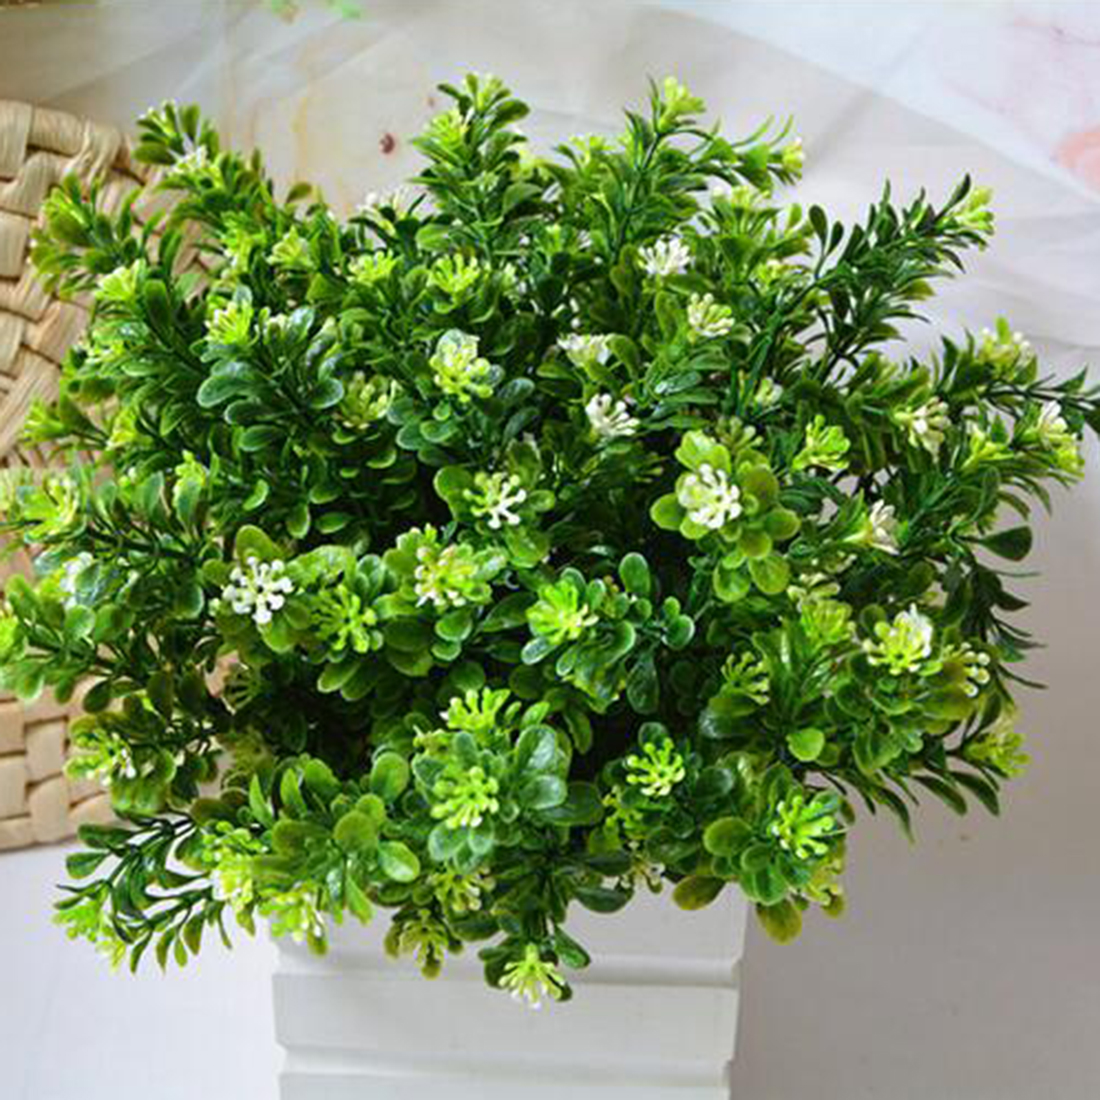 New Style 7 Branch/Bouquet 35 Heads Artificial Green Plant Fake Milan Grass Bonsai Decoration Leaf Corner Lawn Decoration